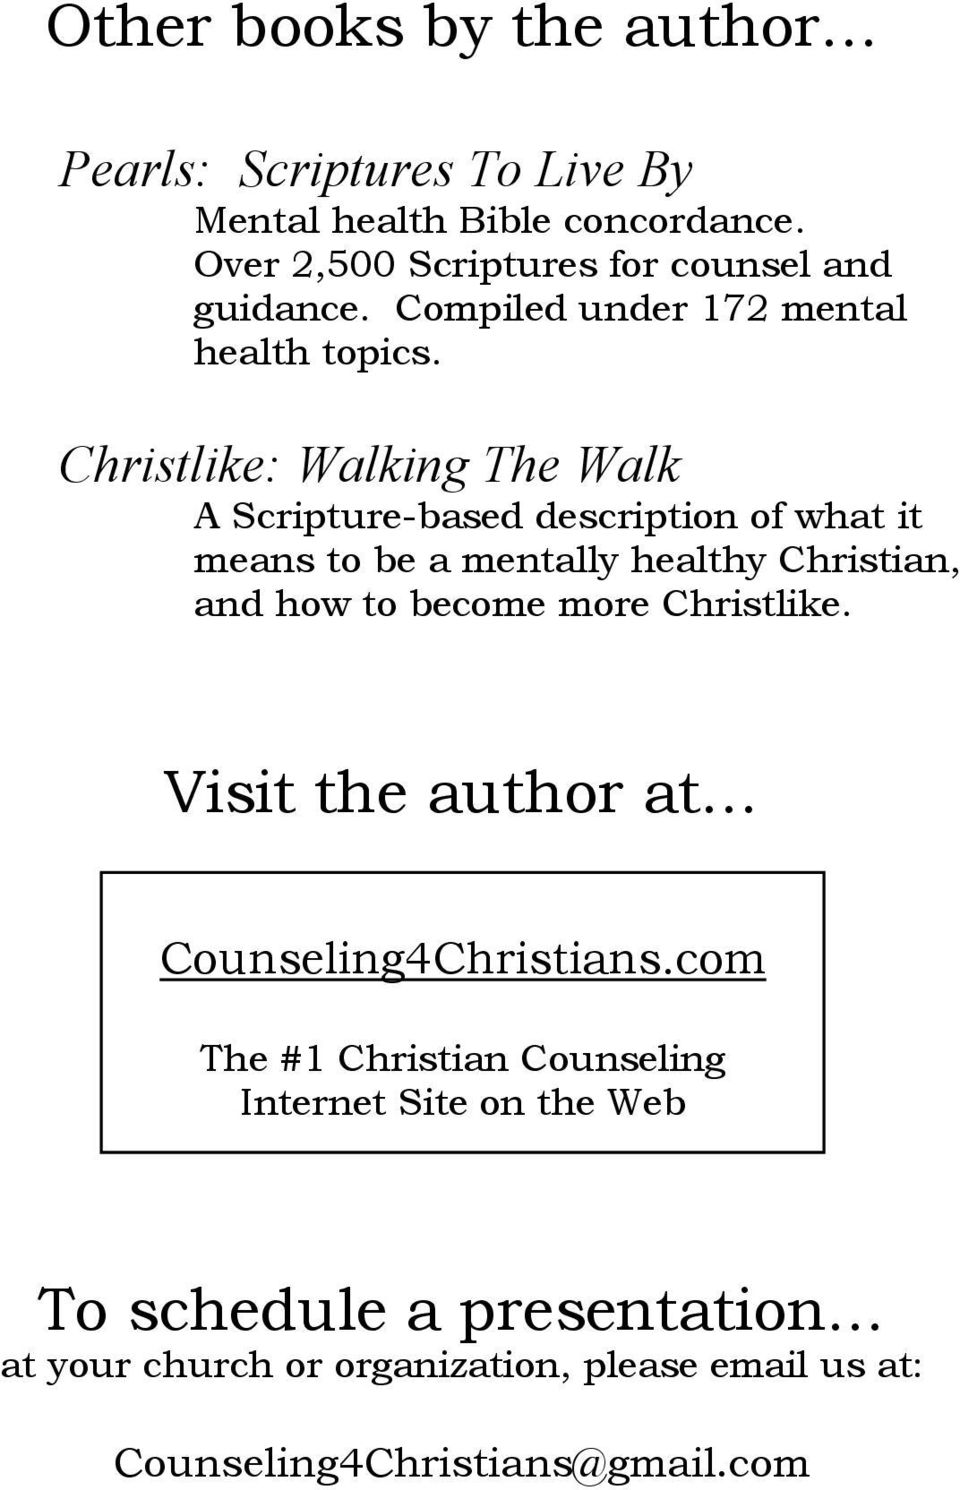 Christlike: Walking The Walk A Scripture-based description of what it means to be a mentally healthy Christian, and how to become